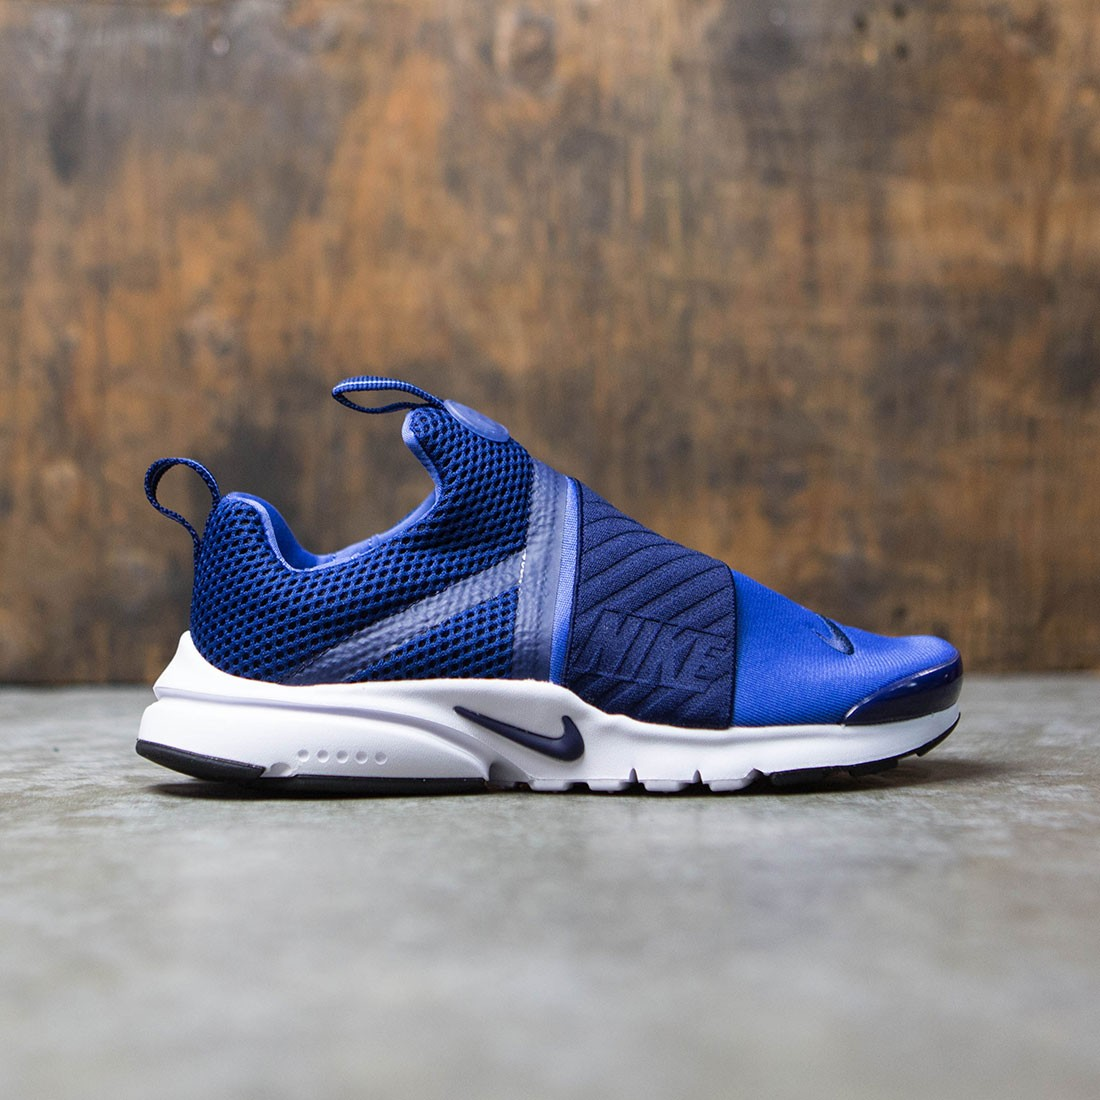 b1341417bb46 Nike Big Kids Nike Presto Extreme (Gs) (comet blue   binary  blue-white-black)